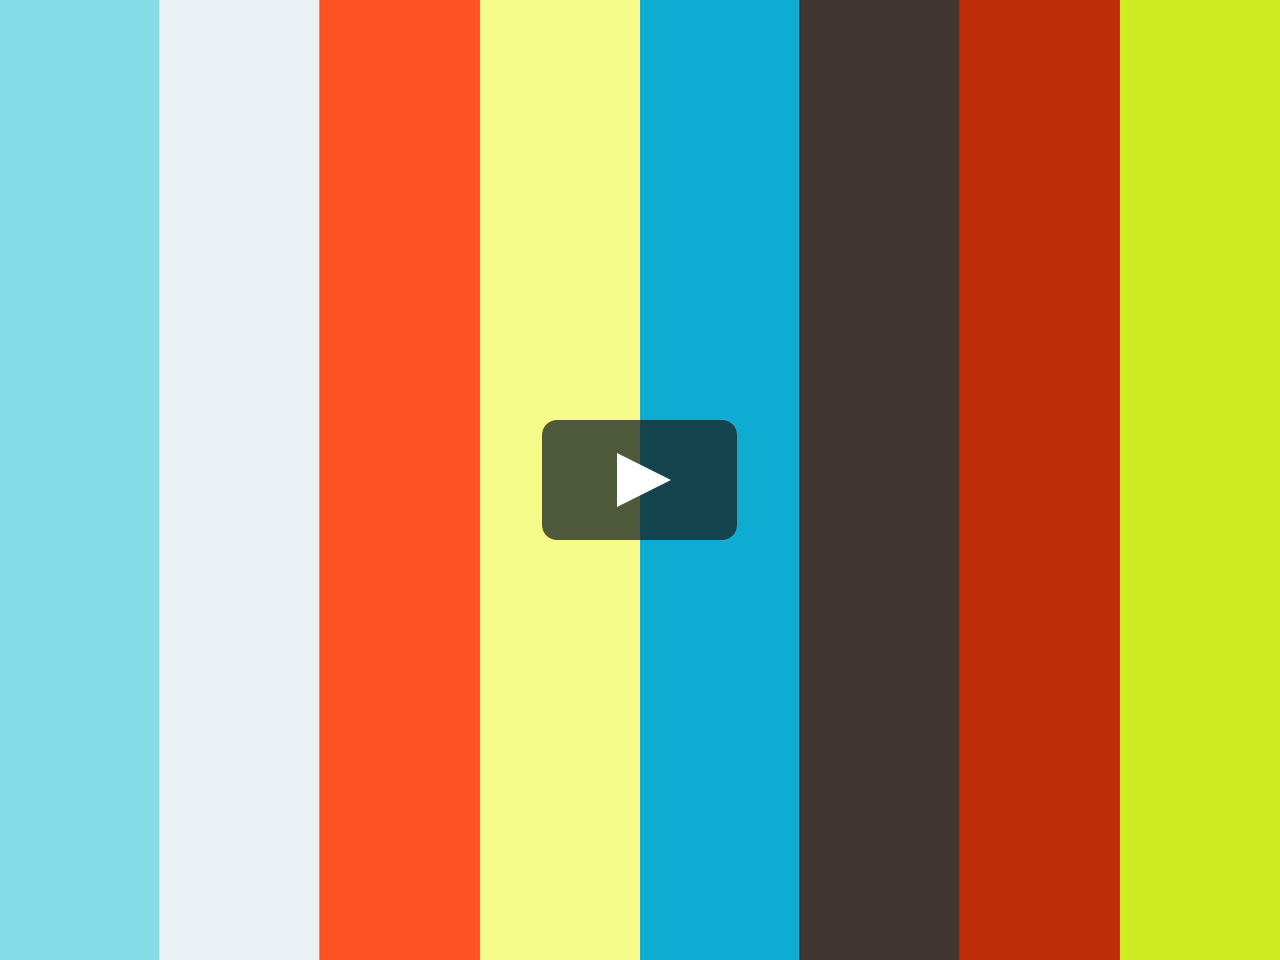 Jeep Liberty repair manual 2007 2008 2009 2010 on Vimeo